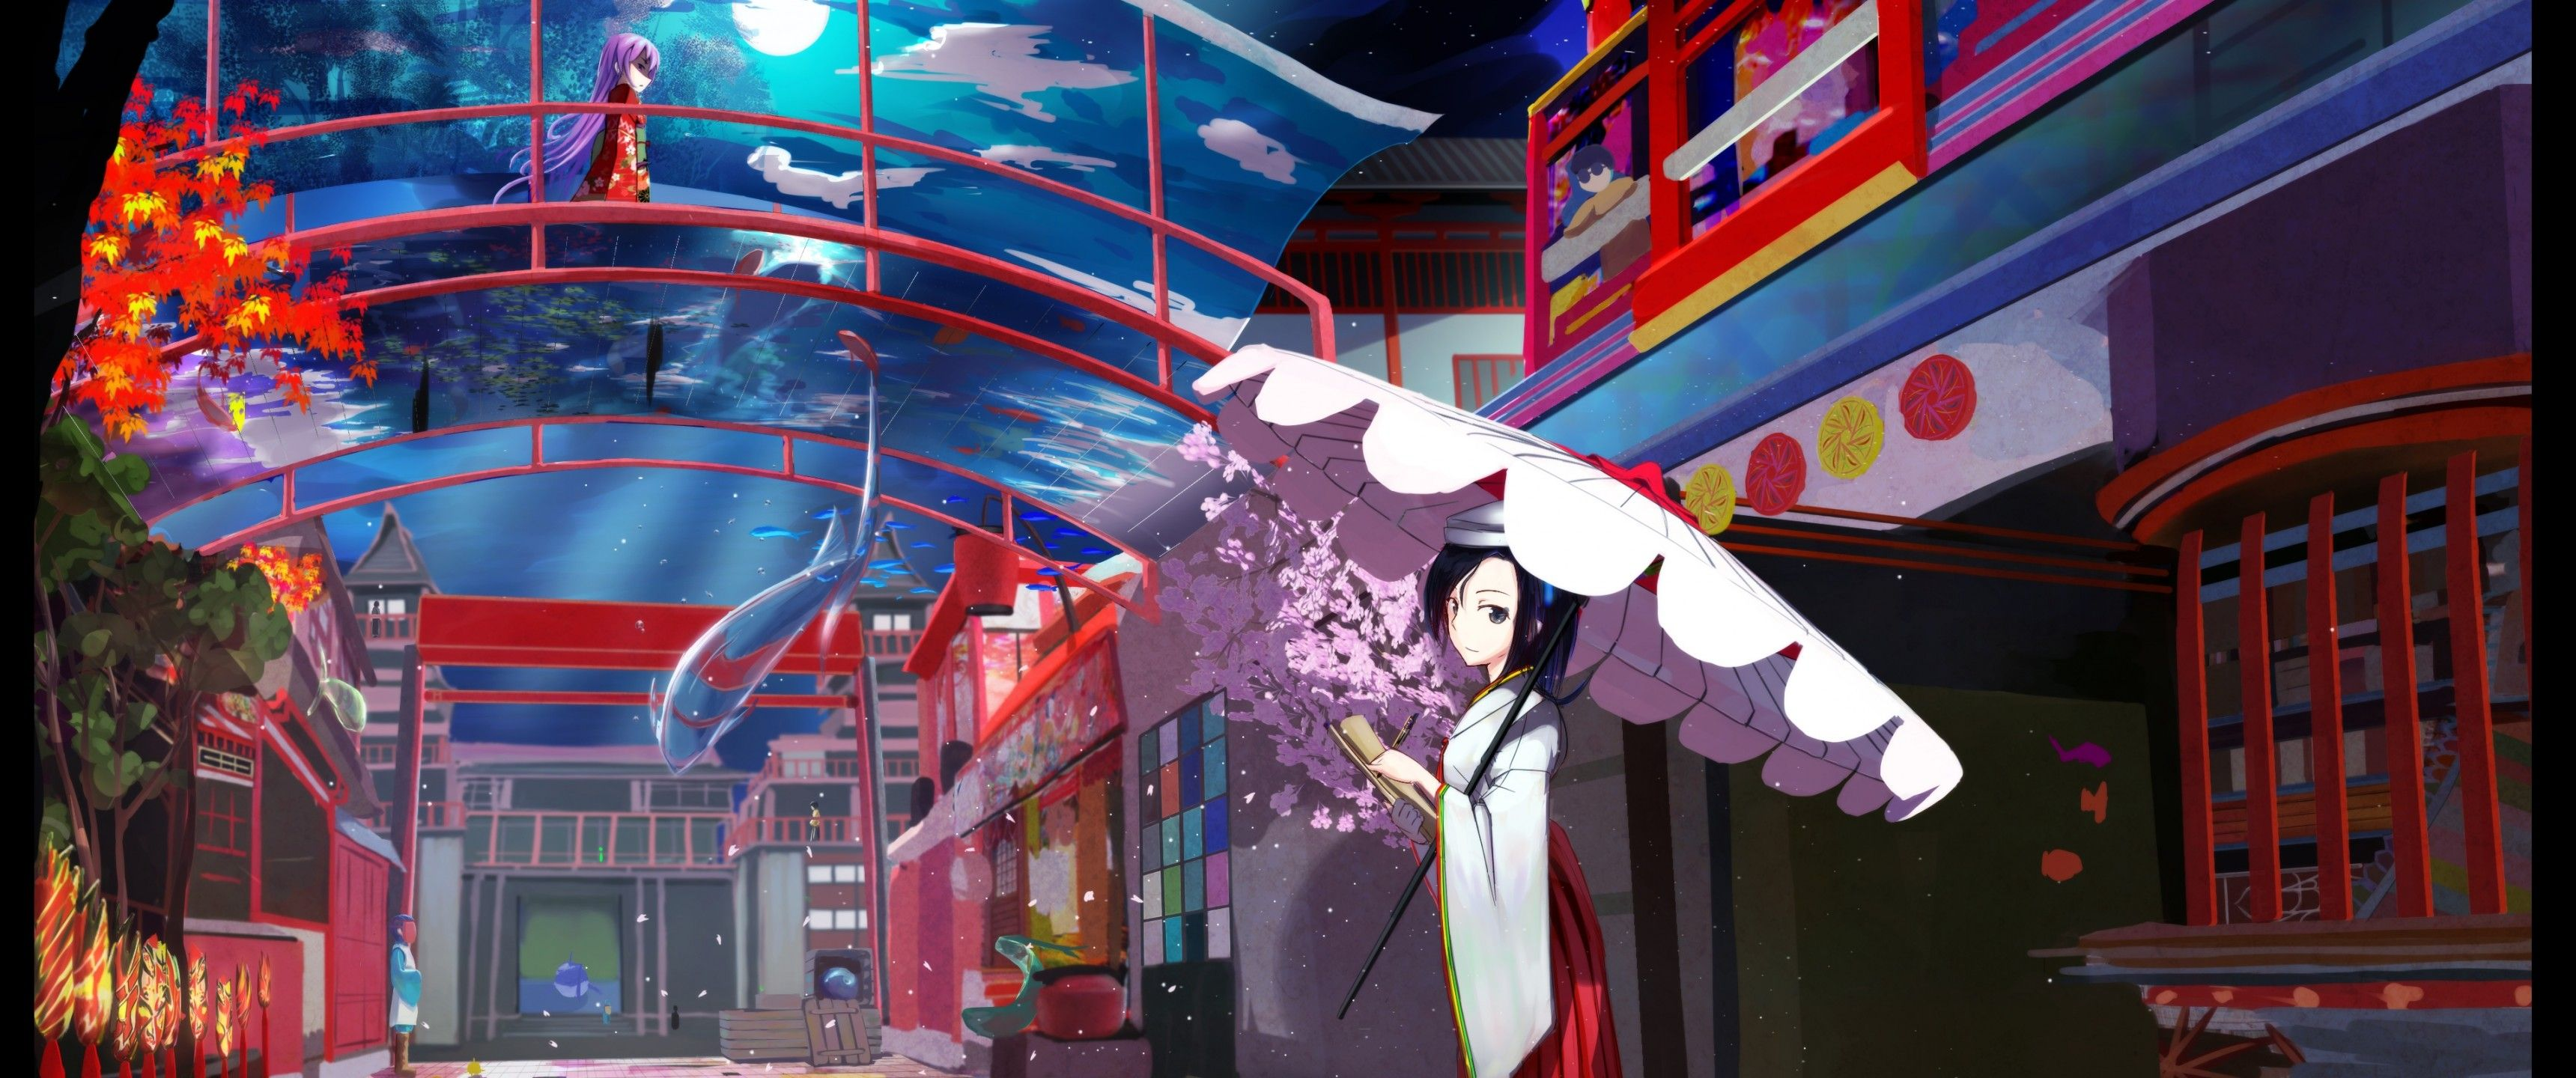 70 Japanese Anime City Android Iphone Desktop Hd